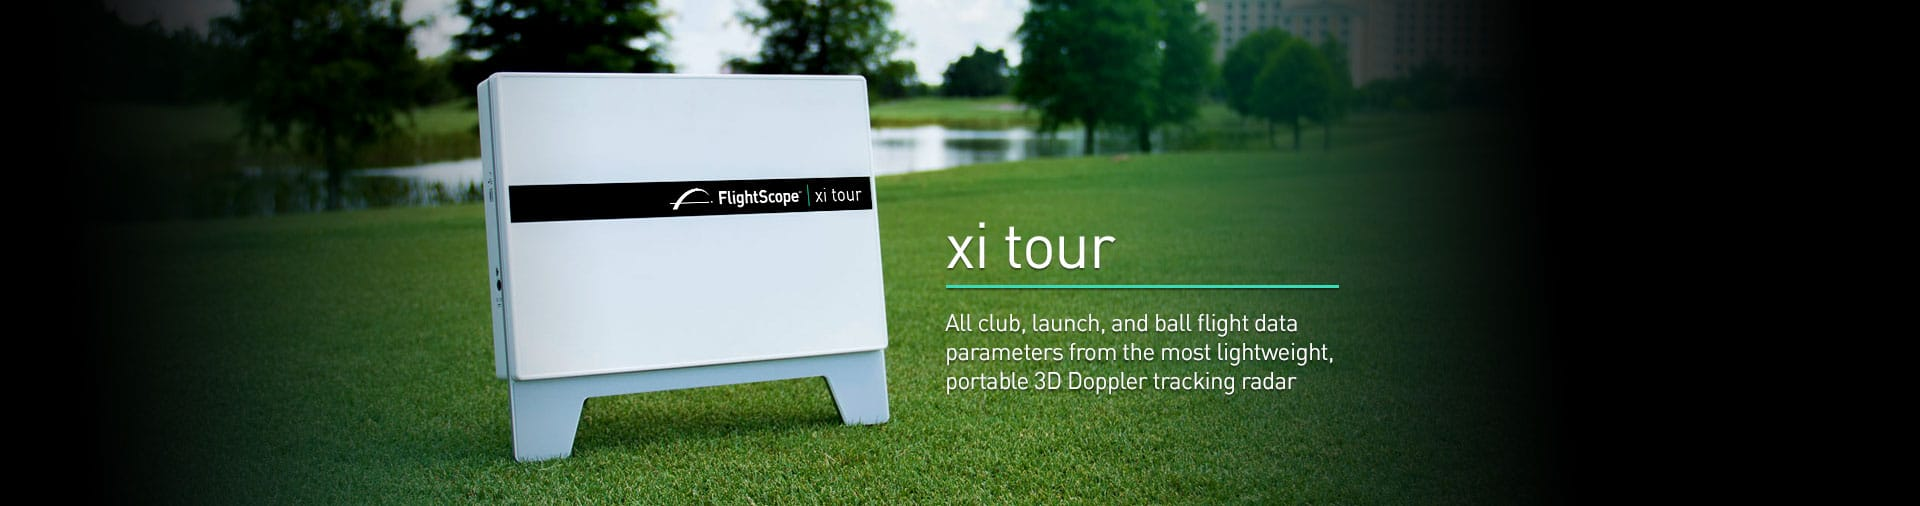 Product photo showing the Flightscope Xi Tour launch monitor/ golf ball tracker.